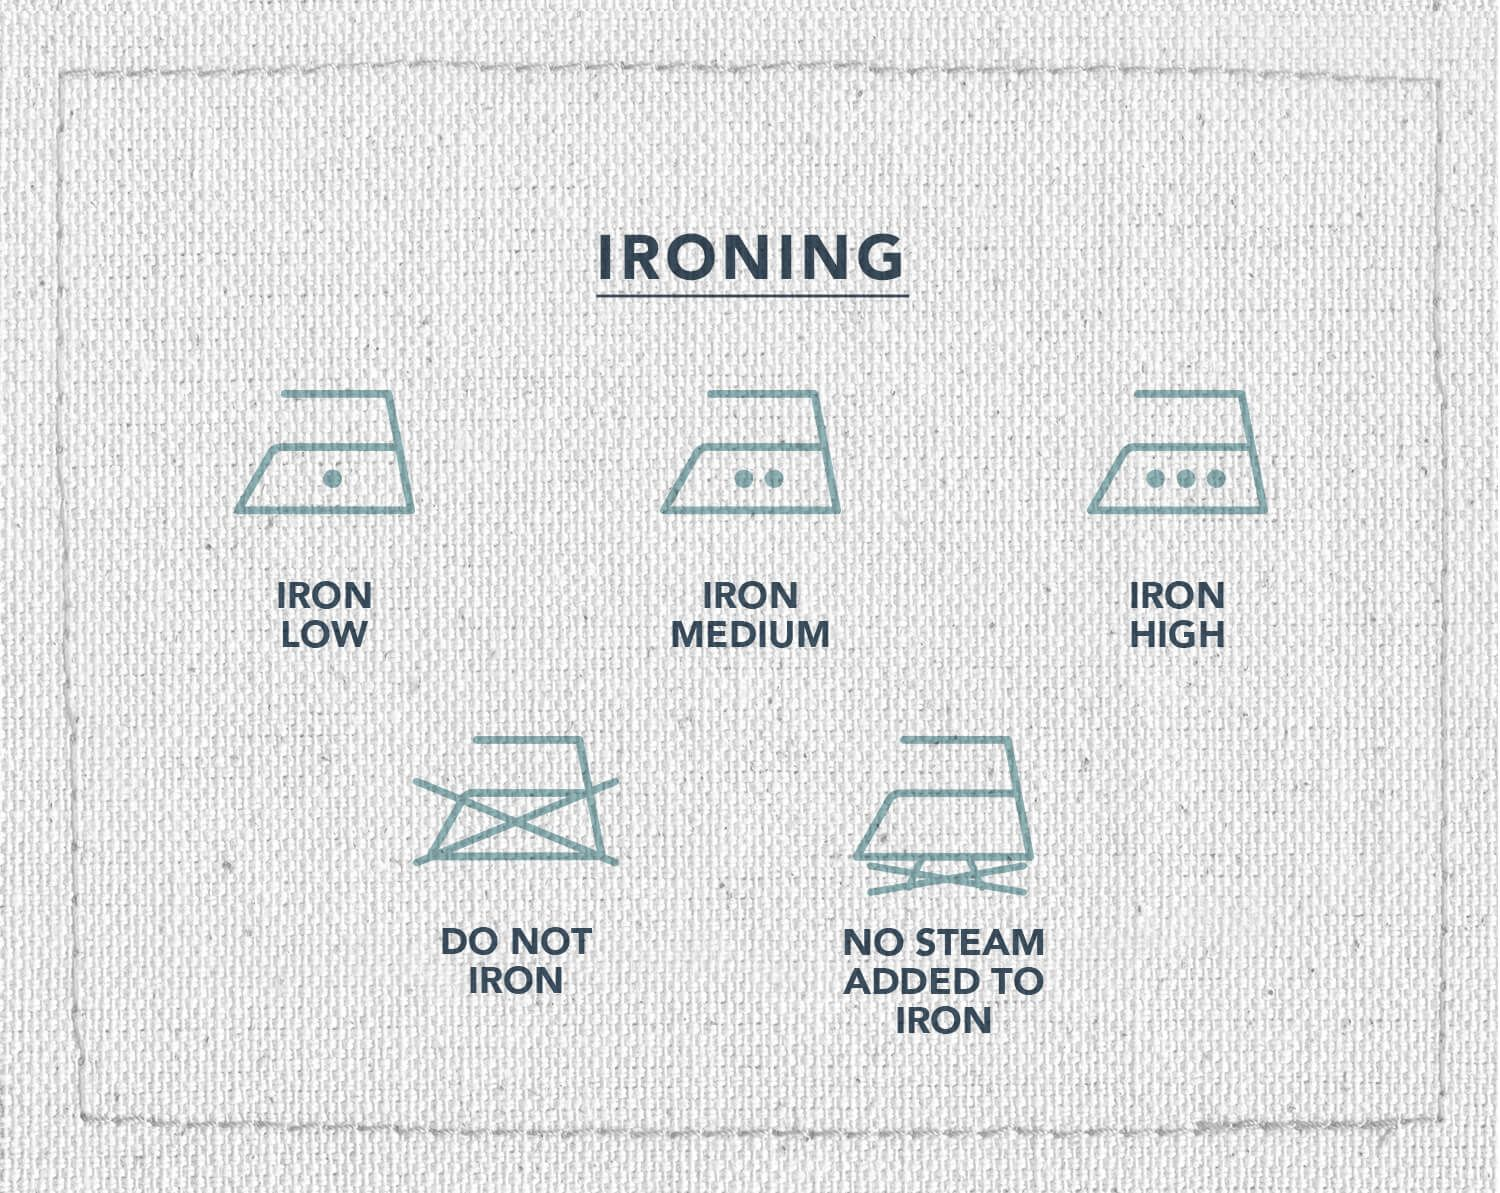 An infographic of five ironing symbols depicting which means to iron low, iron medium, iron high, do not iron, or no steam, added to iron.